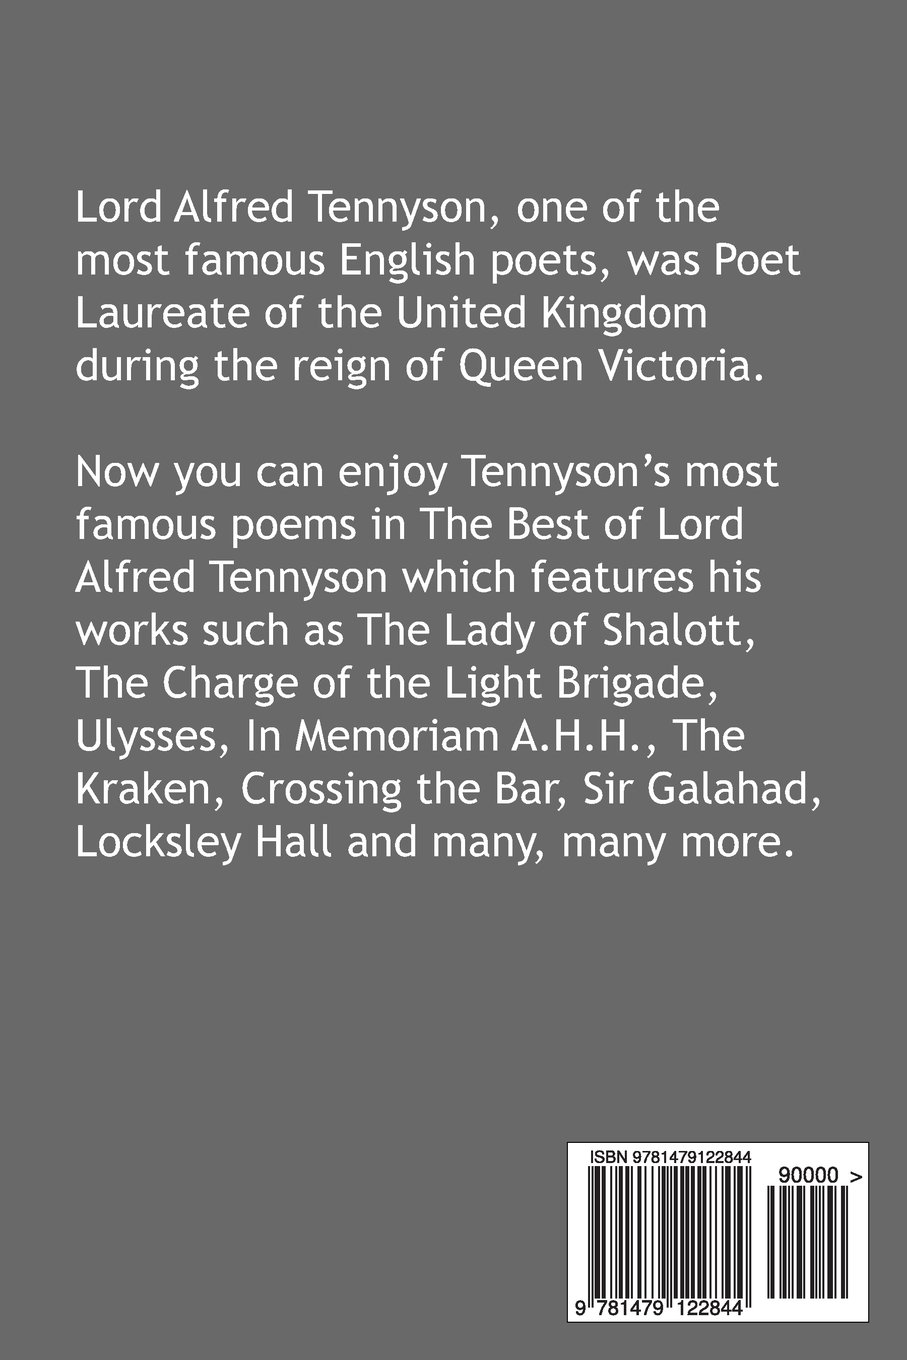 the best of lord alfred tennyson featuring lady of shalott the the best of lord alfred tennyson featuring lady of shalott the charge of the light brigade ulysses in memoriam a h h the kraken crossing the bar